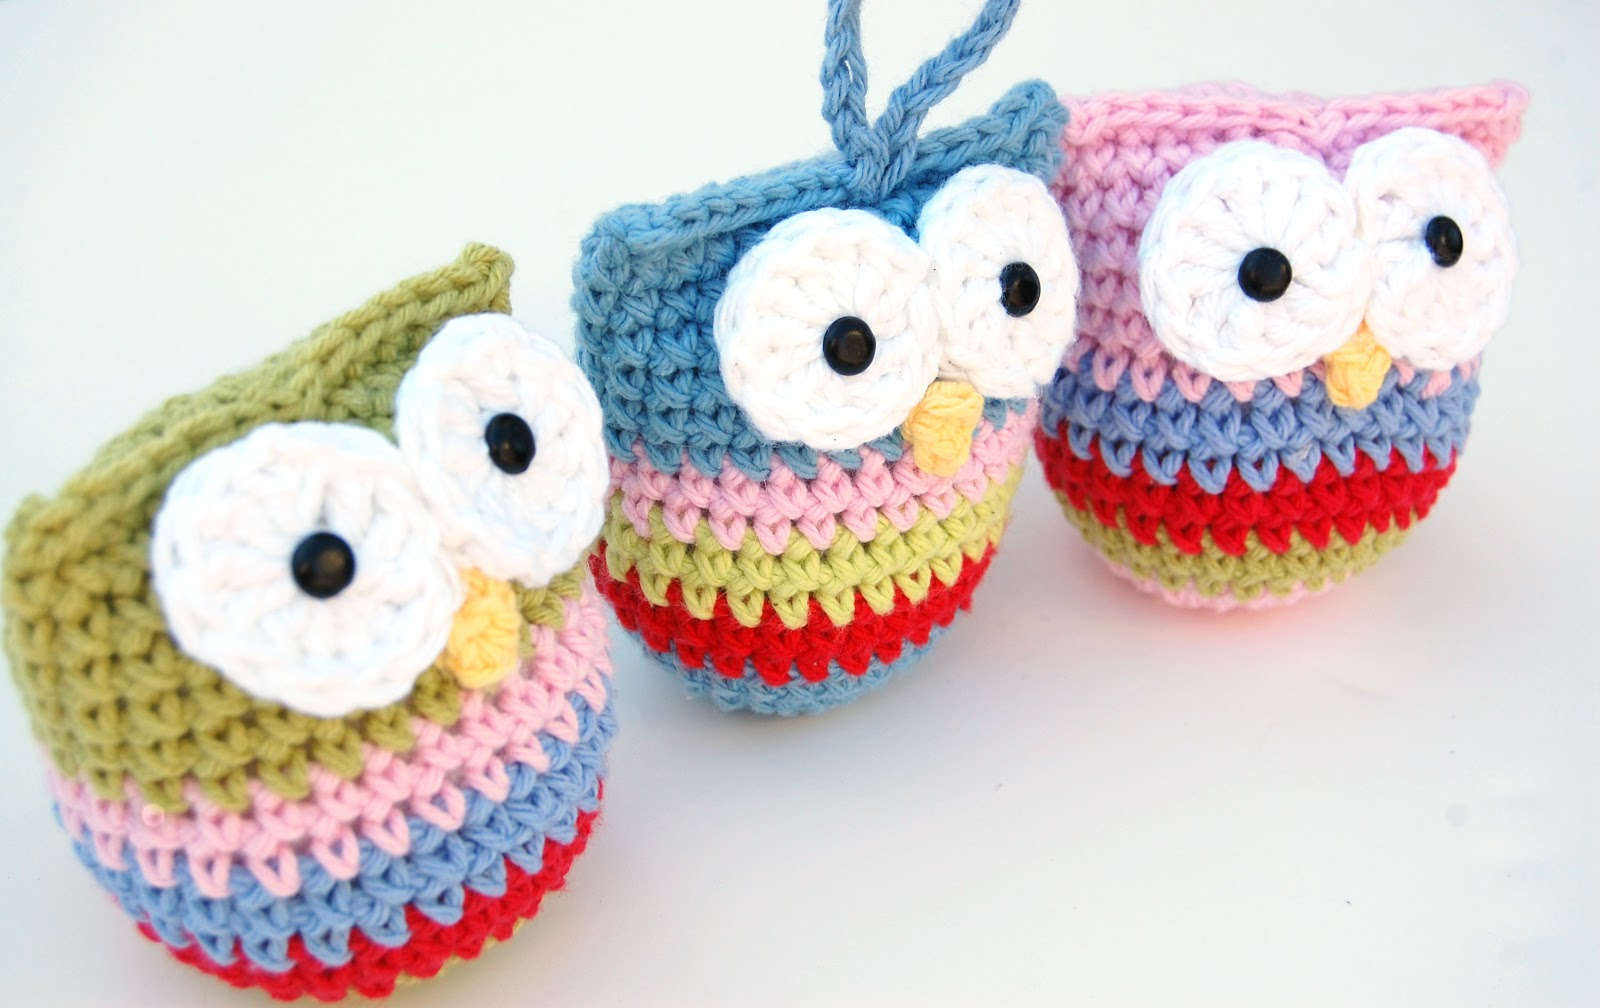 Crochet Owl : Crochet Owl Ornament Pattern